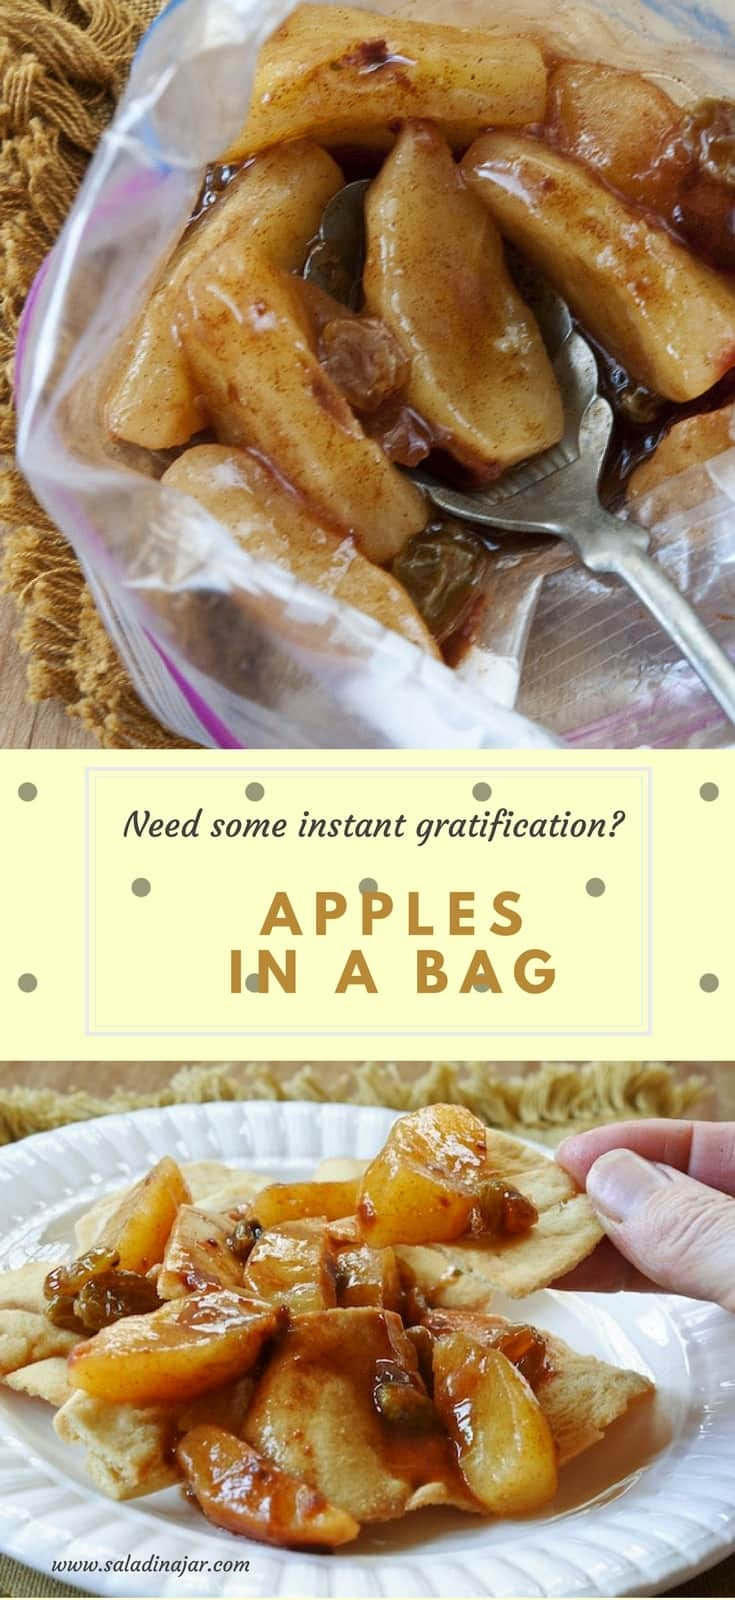 apples in a bag, apple bueno, snacks, quick, fruit, dessert